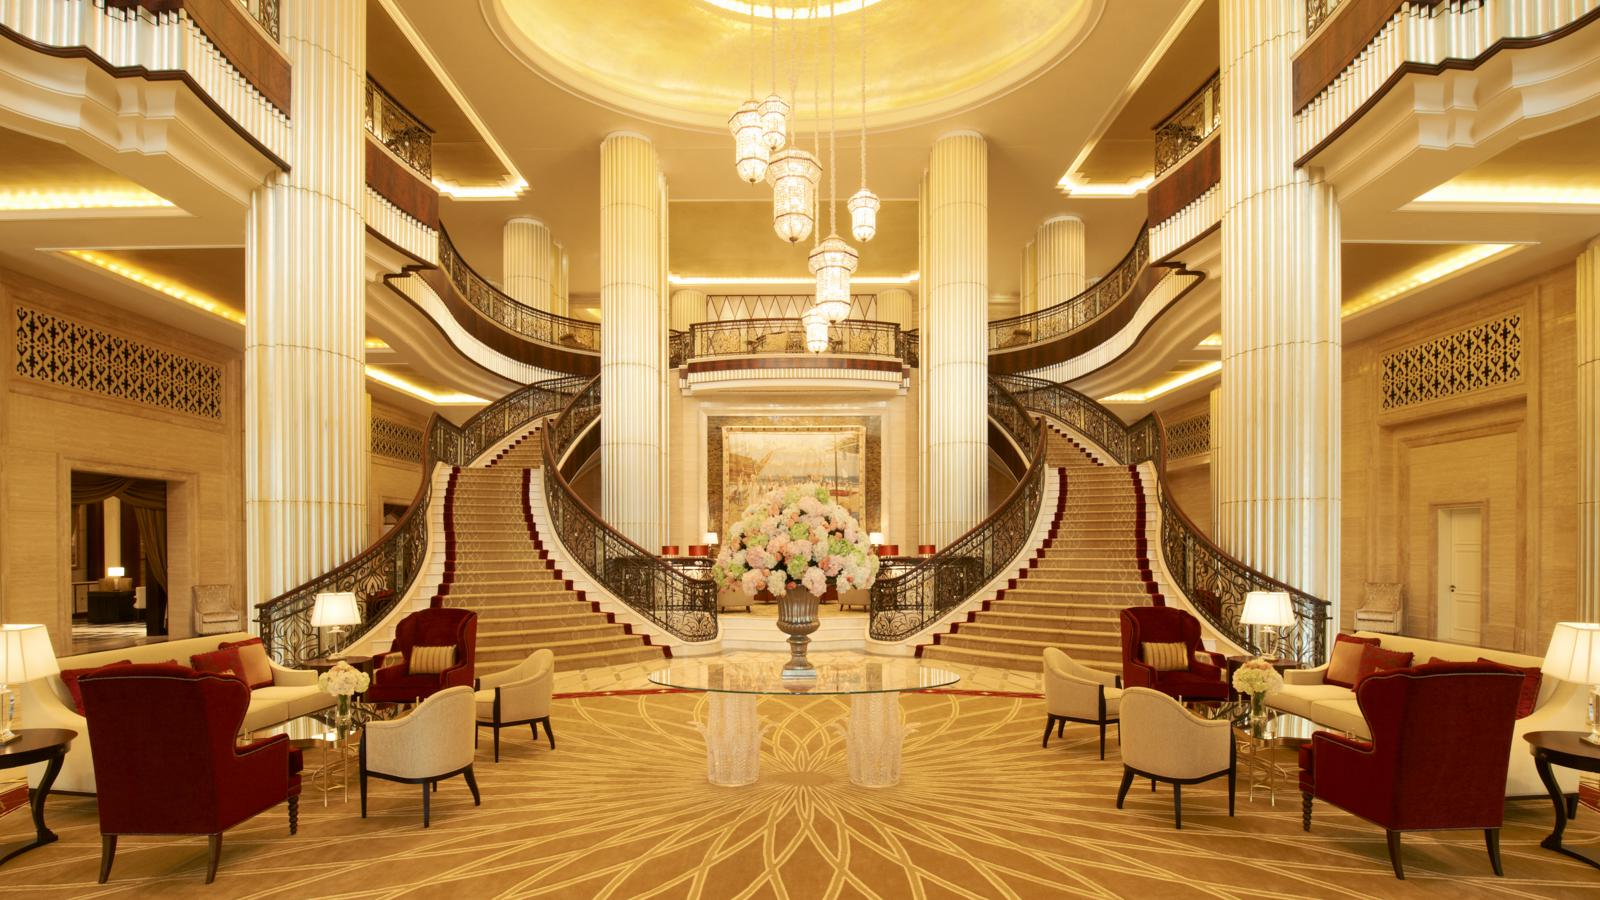 Meetings and events the st regis abu dhabi events in abu dhabi Grand home furniture dubai